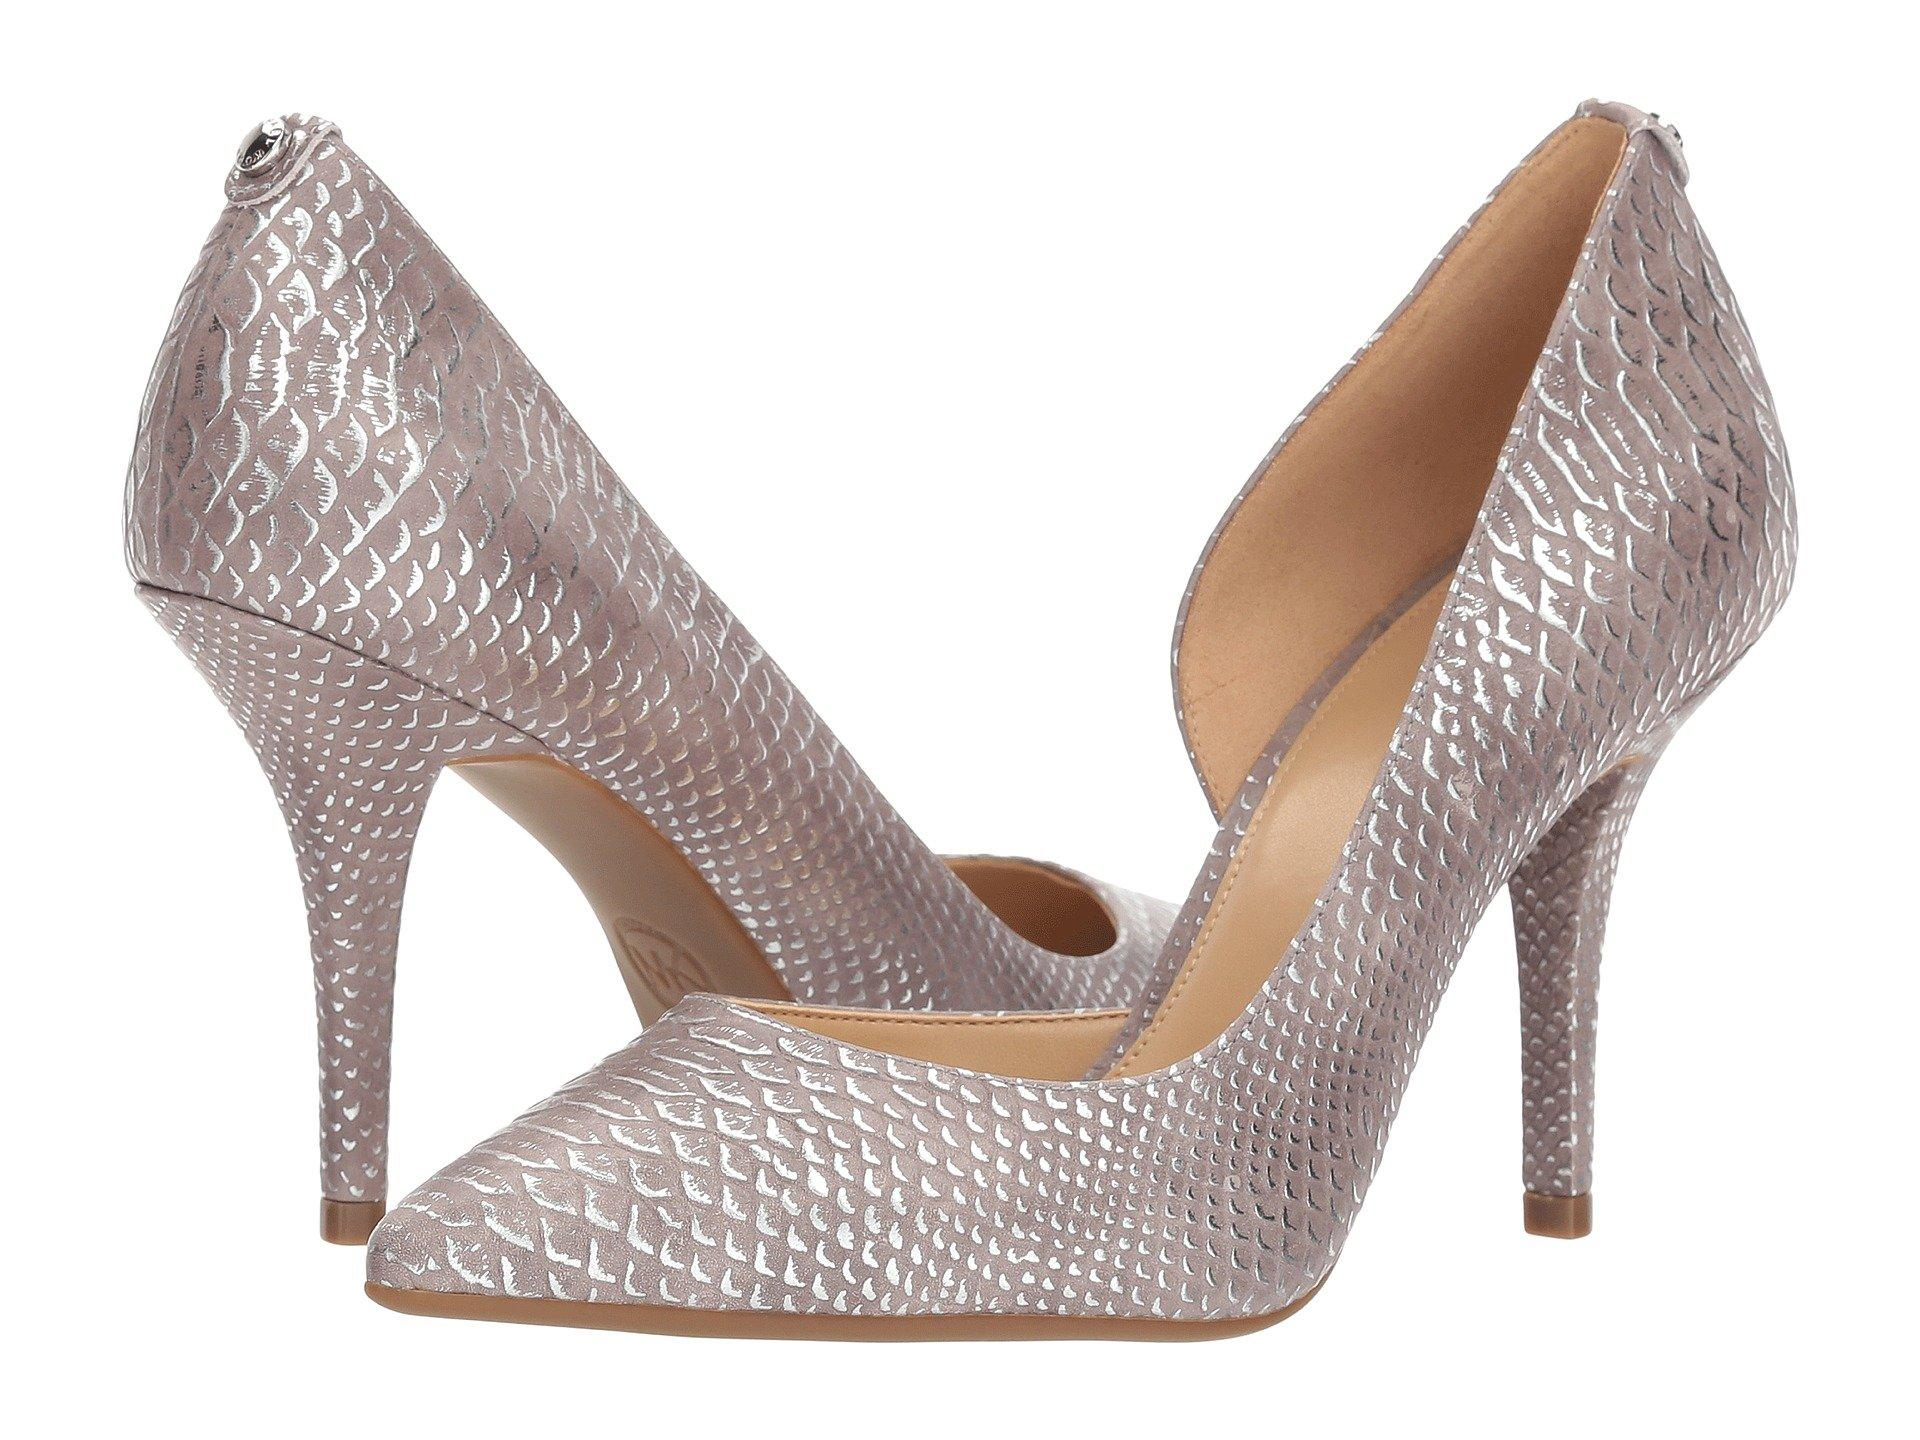 Nathalie Flex High Pump in Silver